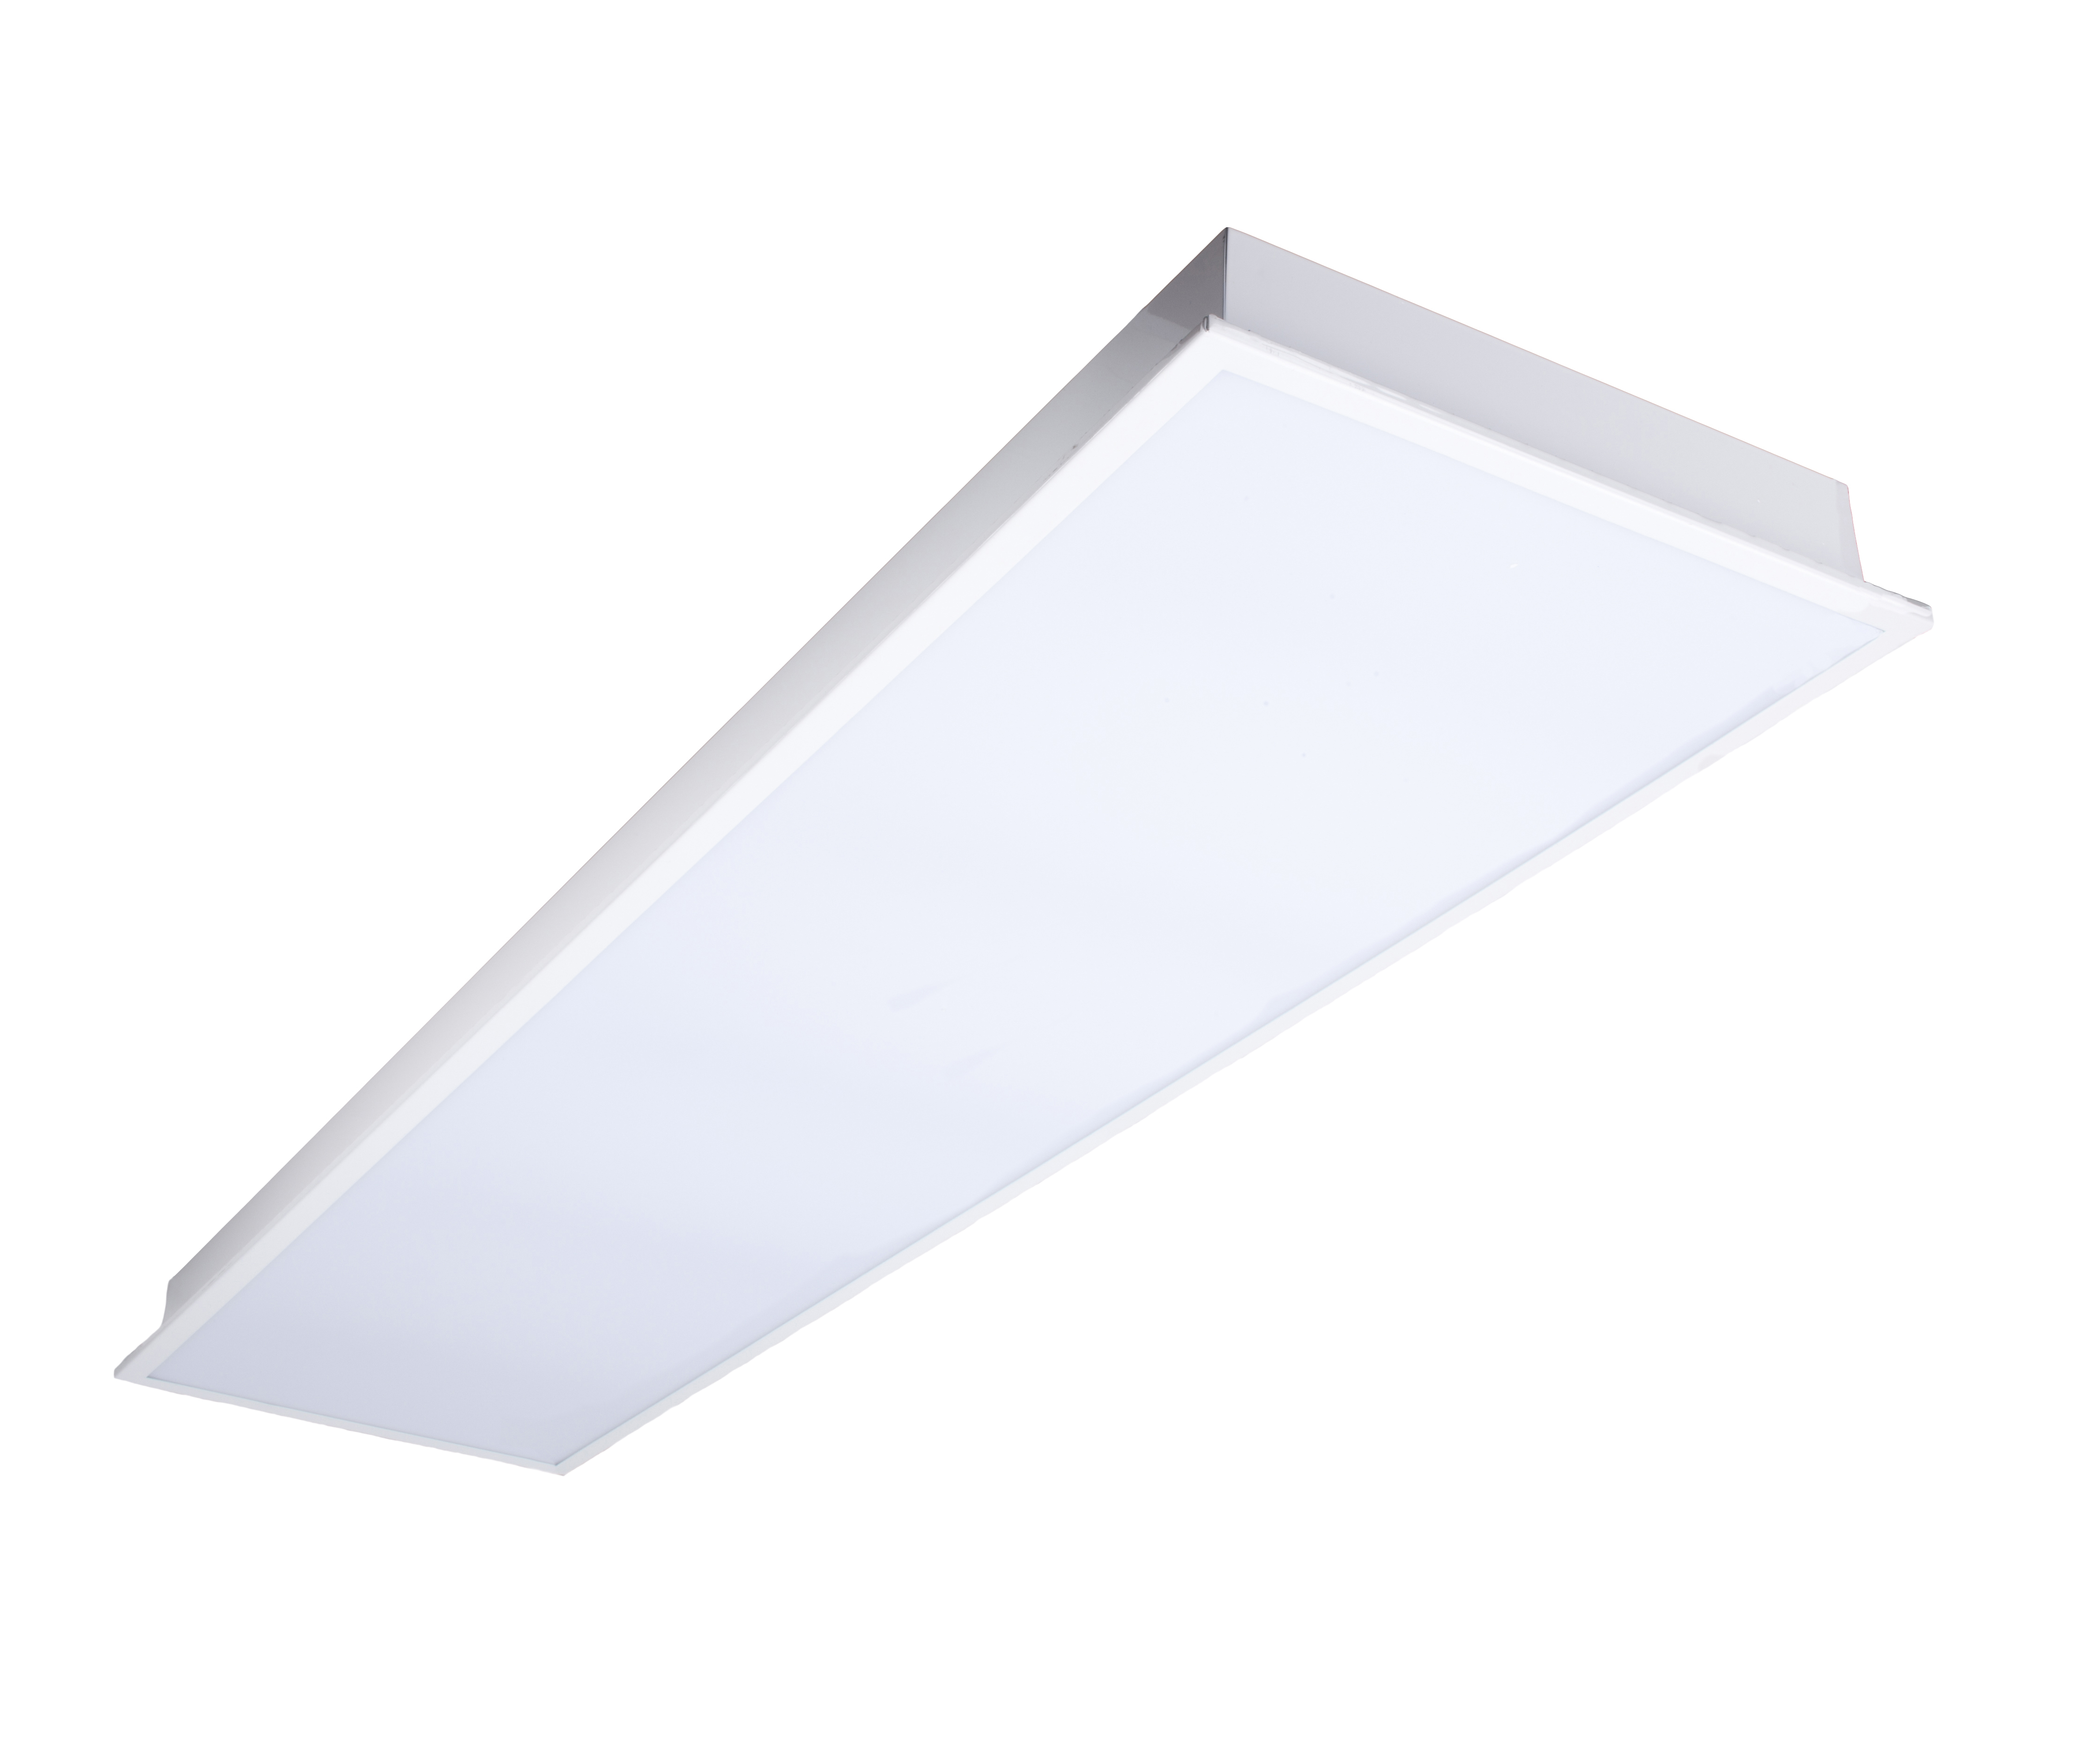 14FPL30/850/LED 81909 LED FLAT PANEL 1X4 30W 5000K 0-10V DIMMABLE